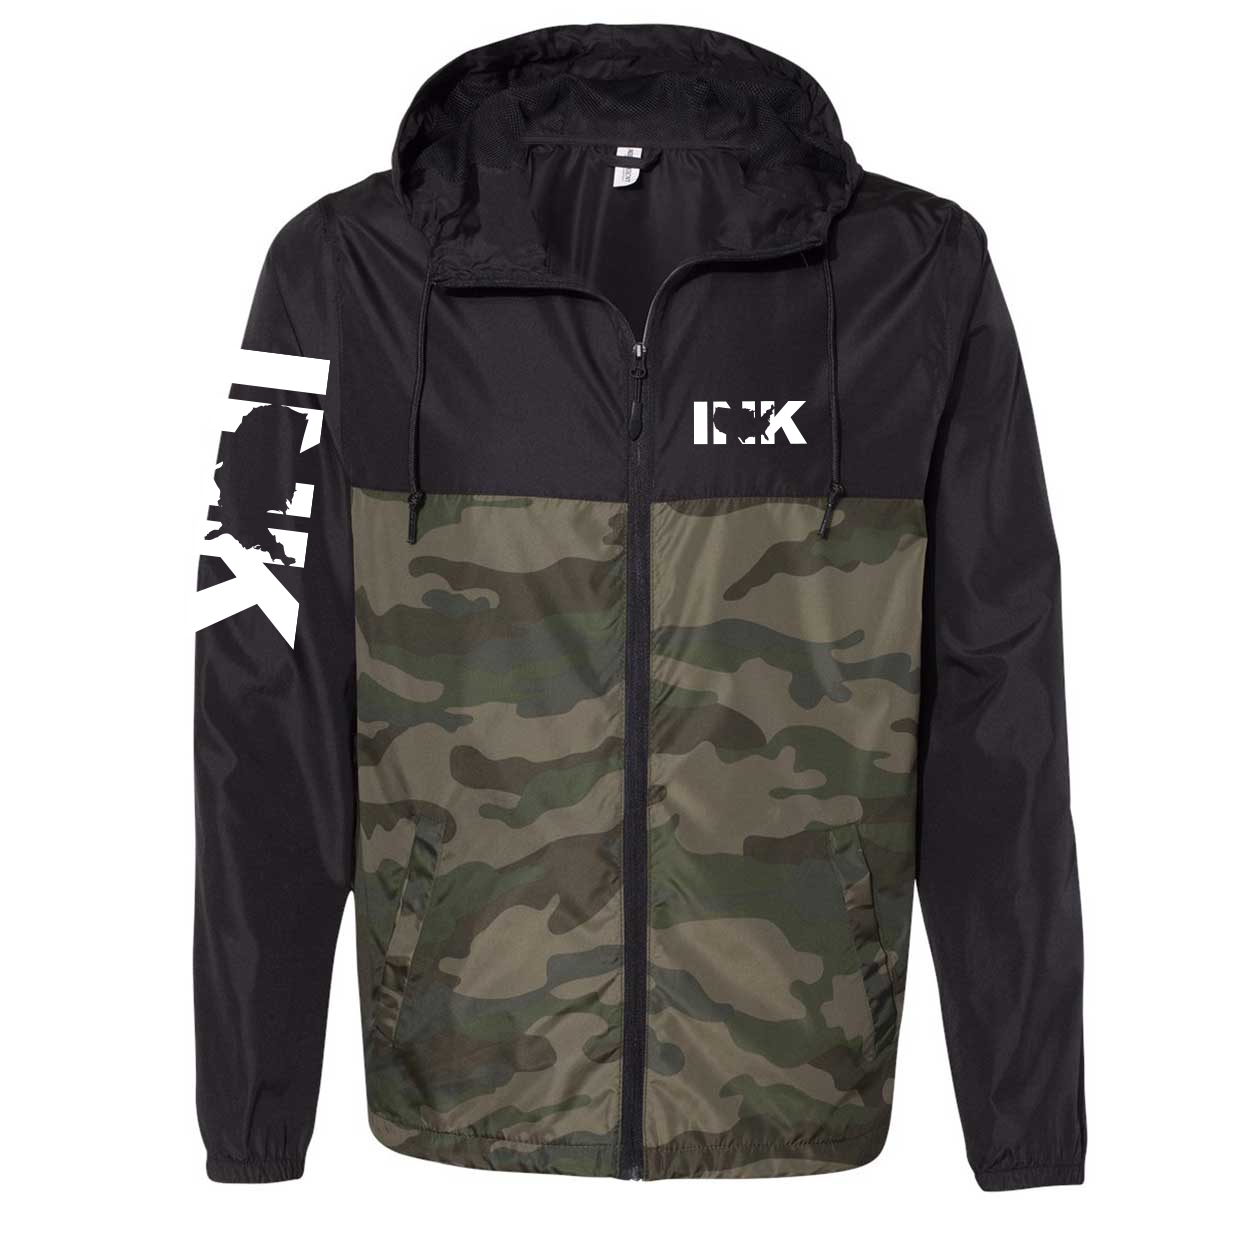 Ink United States Classic Lightweight Windbreaker Black/Forest Camo (White Logo)